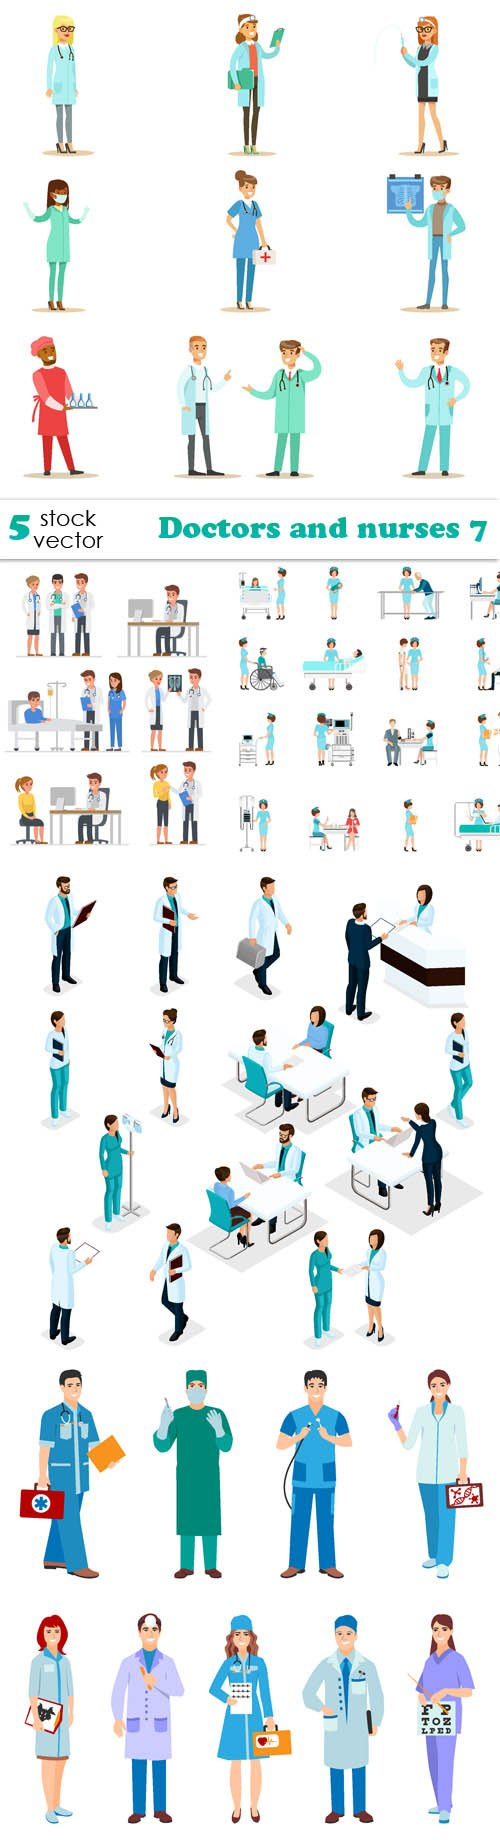 Vectors - Doctors and nurses 7